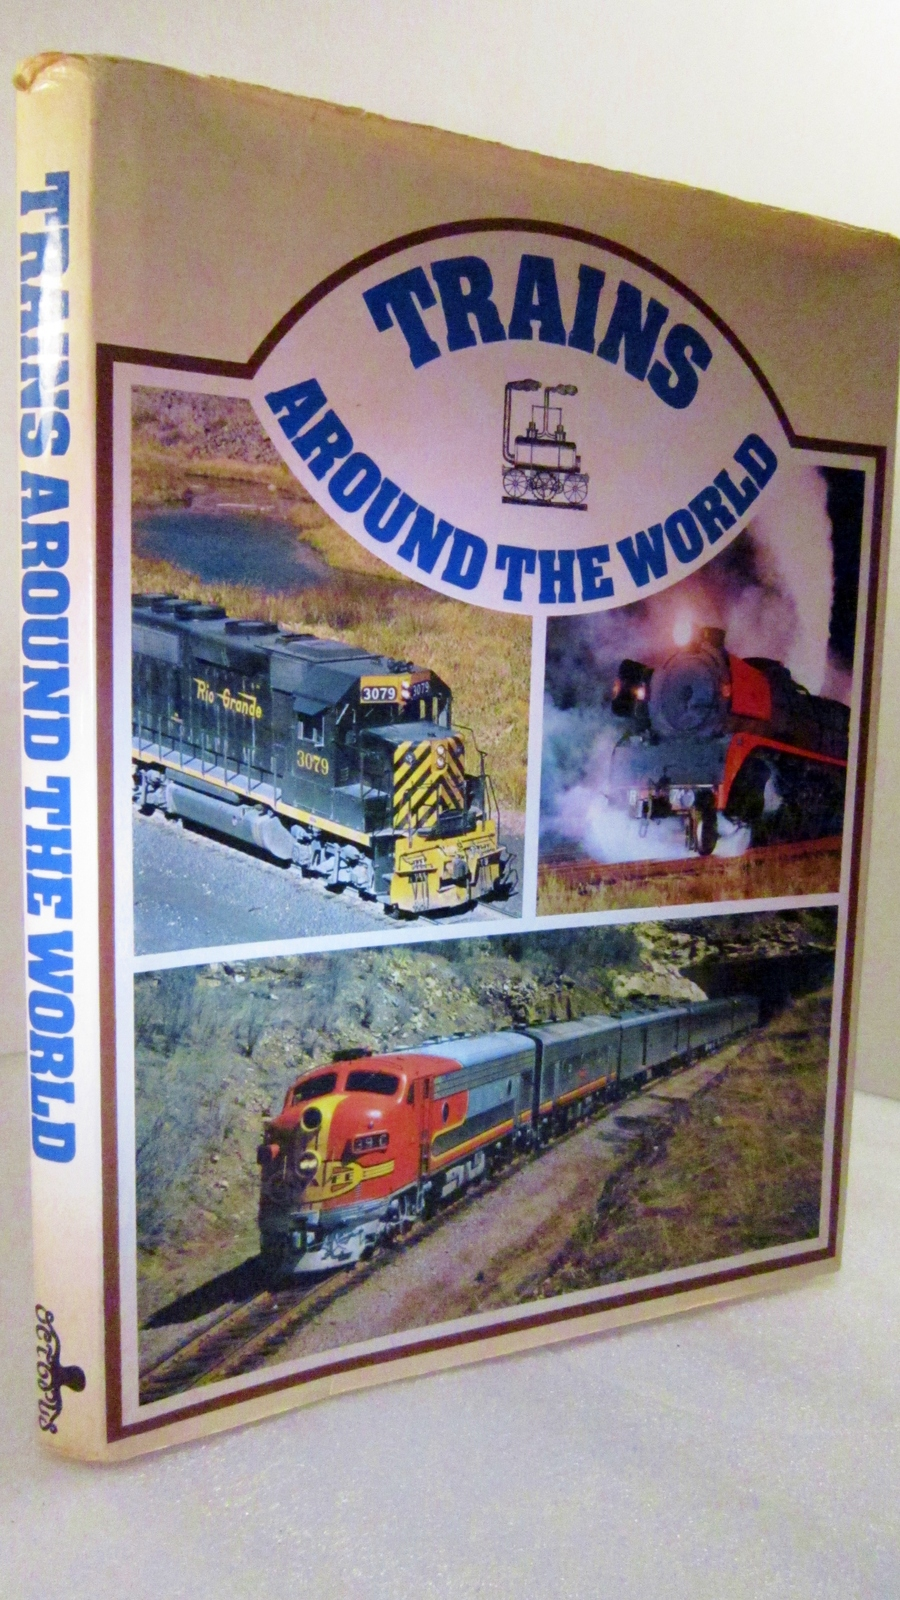 Trains Around the World 1973 Pictorial History of Trains